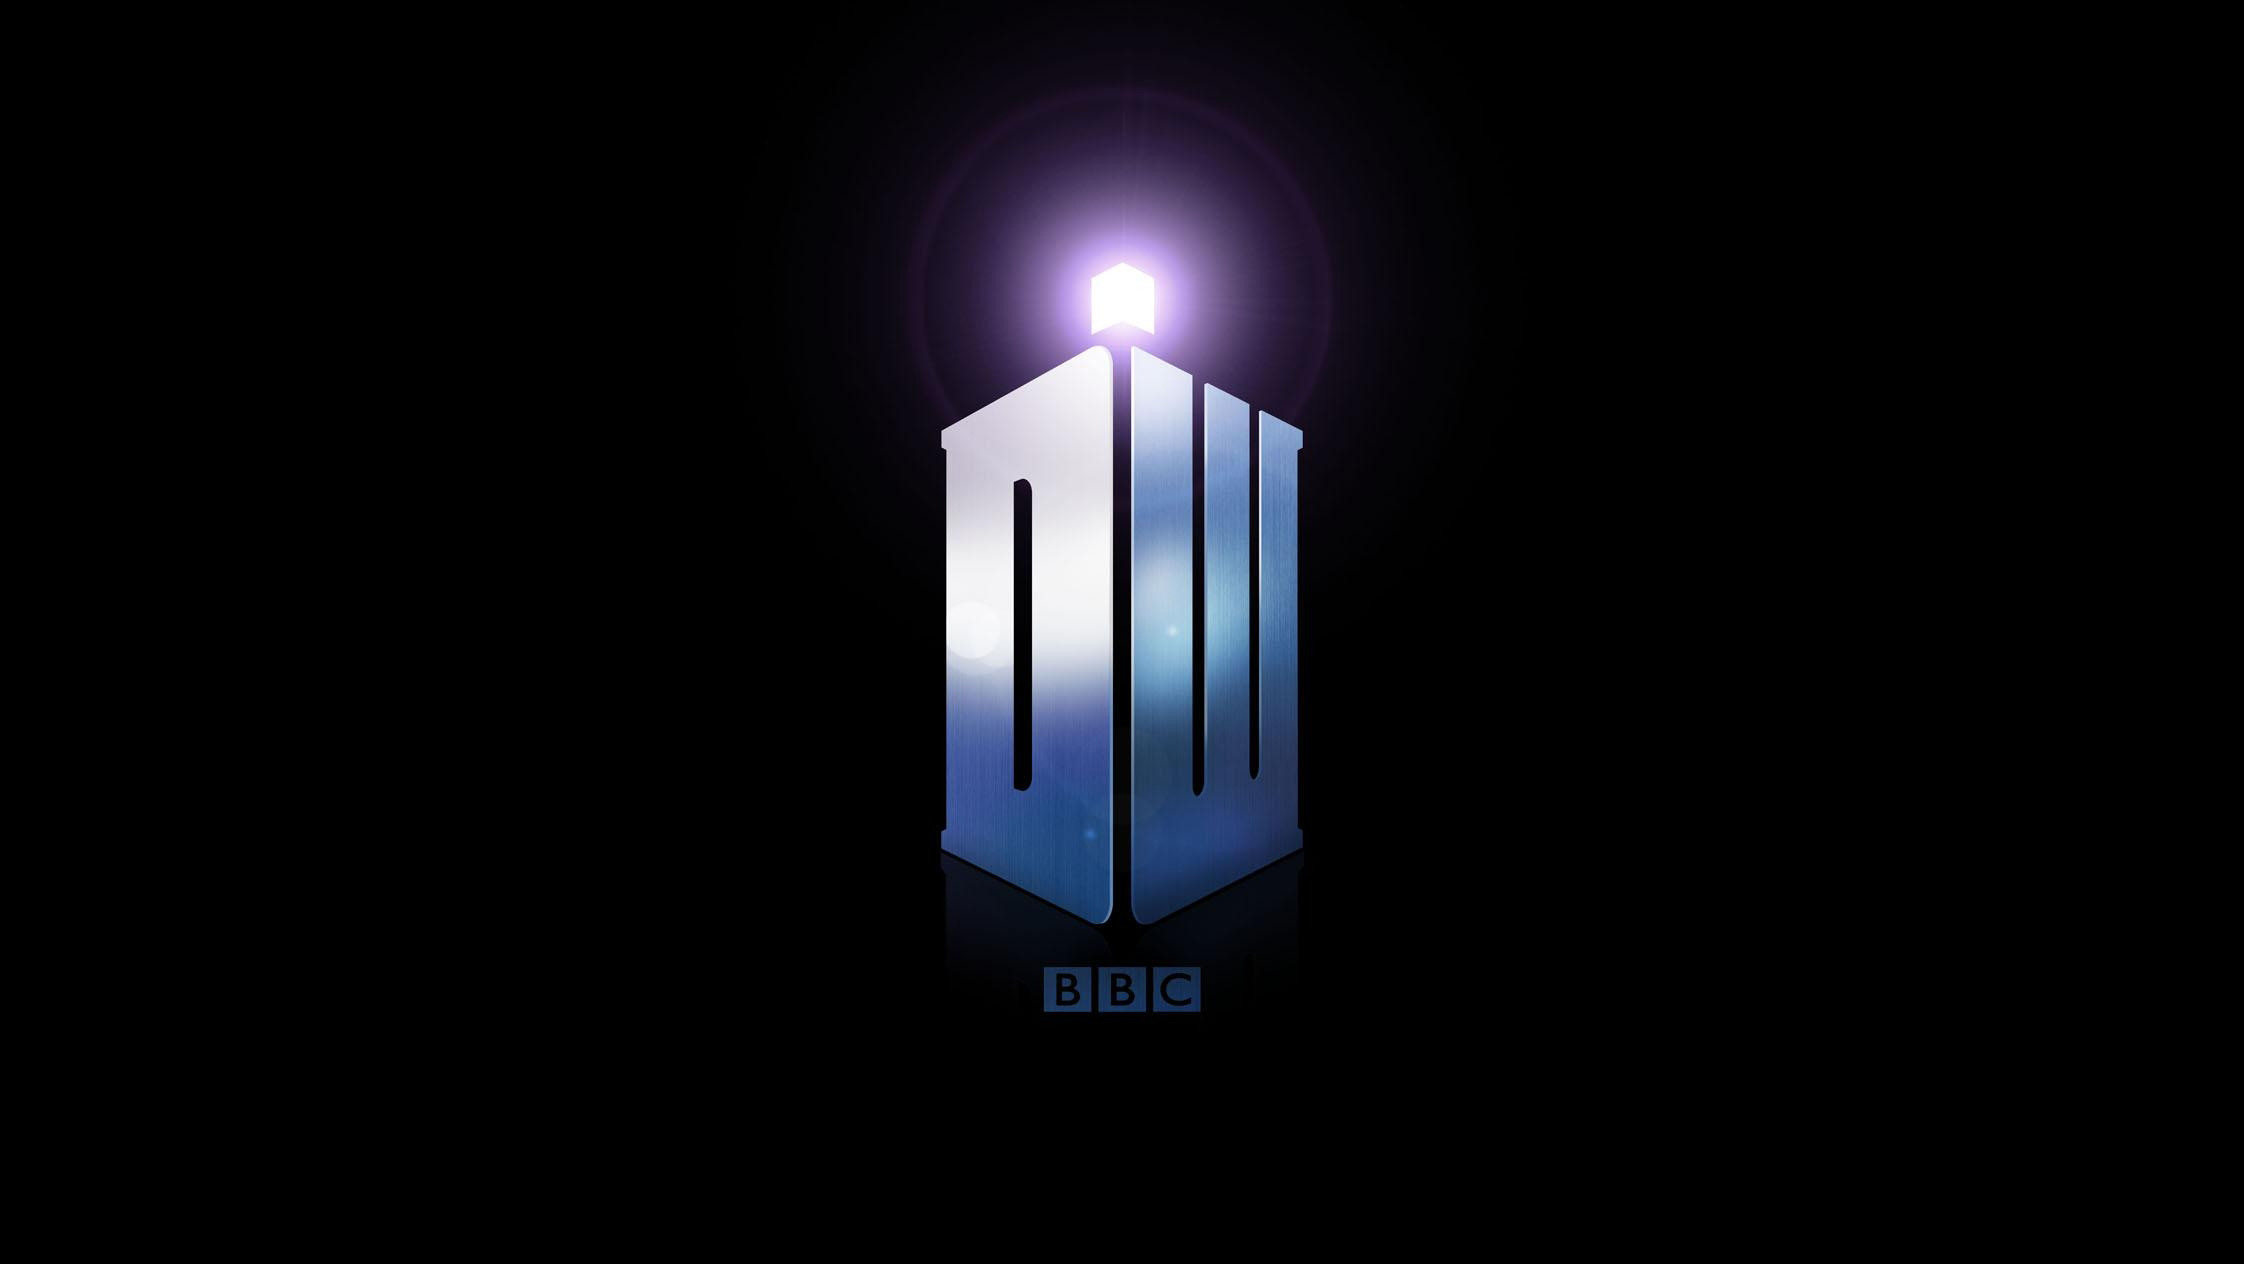 BROWSE doctor who iphone wallpaper tardis- HD Photo Wallpaper .